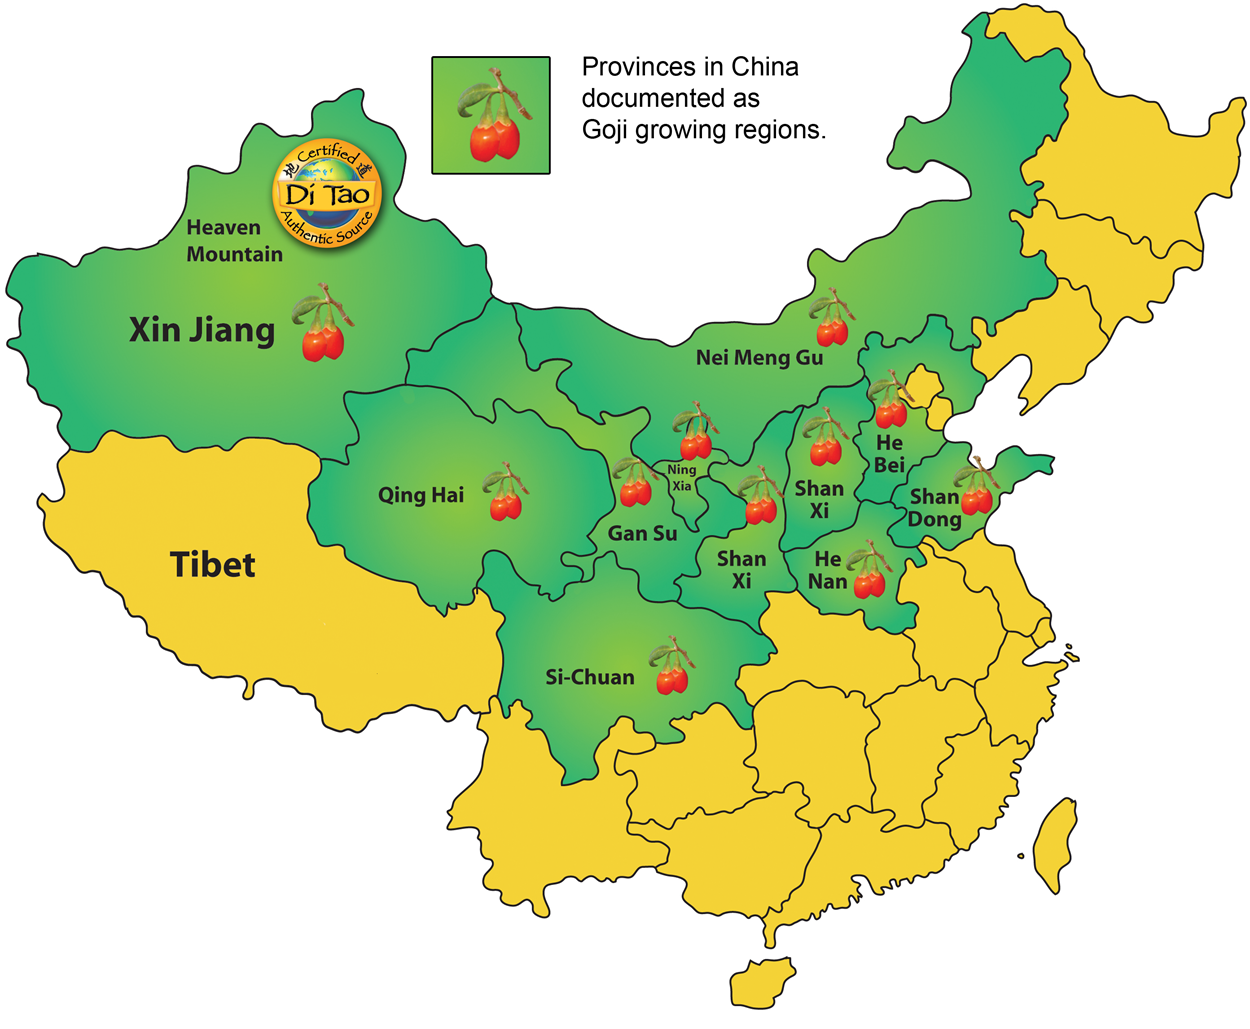 Goji growing provinces in China